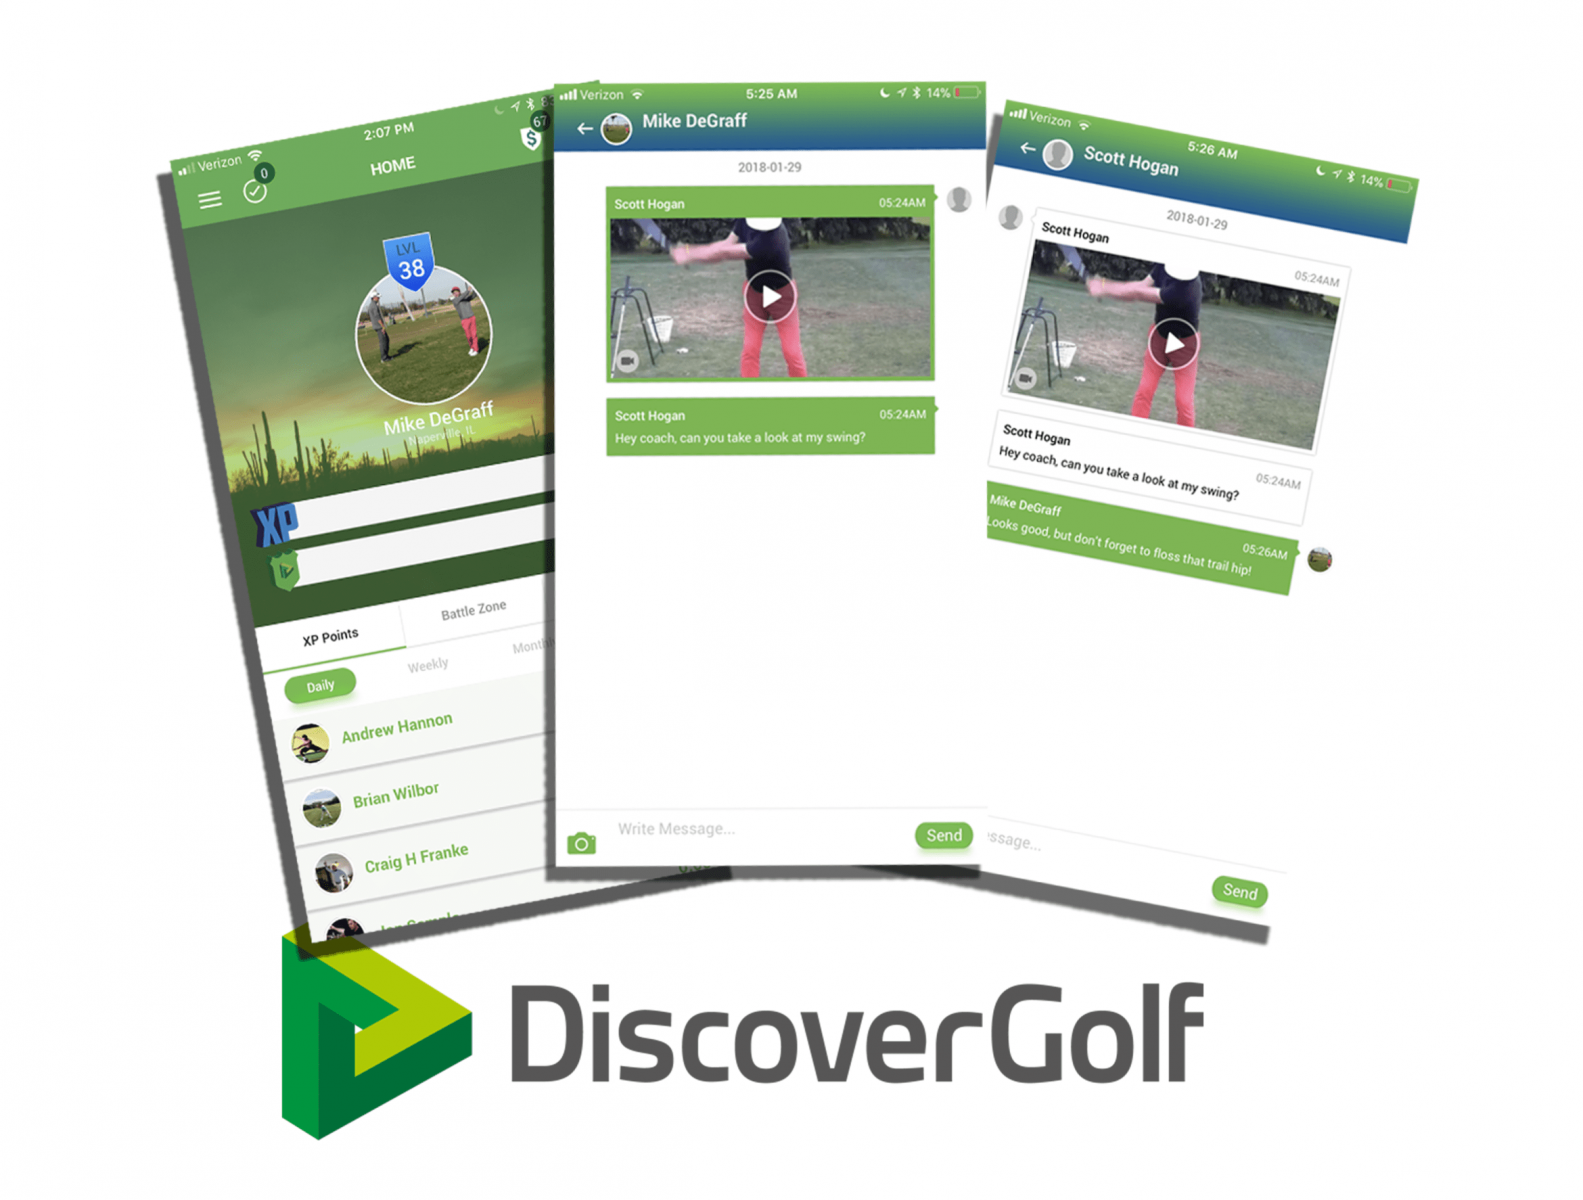 DiscoverGolf logo and product screenshots